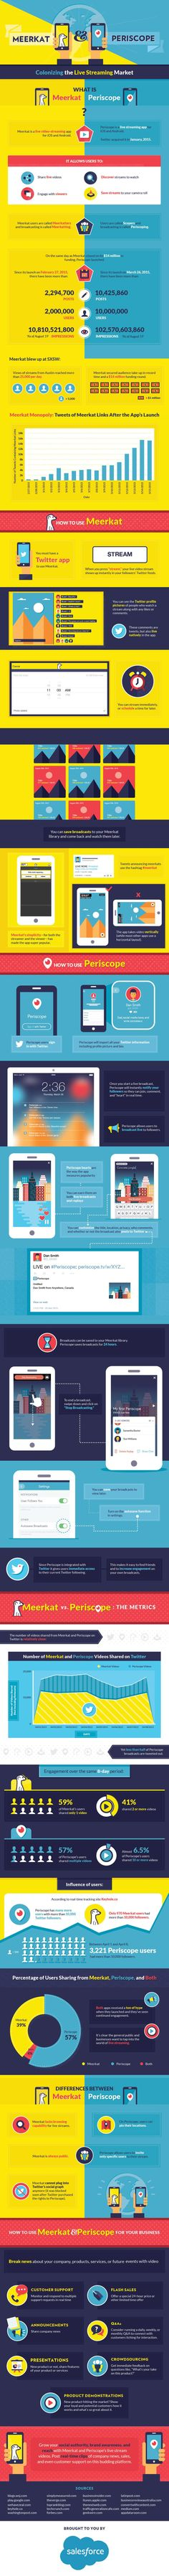 How Do Metrics For Live Video Streaming Apps Meerkat And Periscope Compare? #infographic